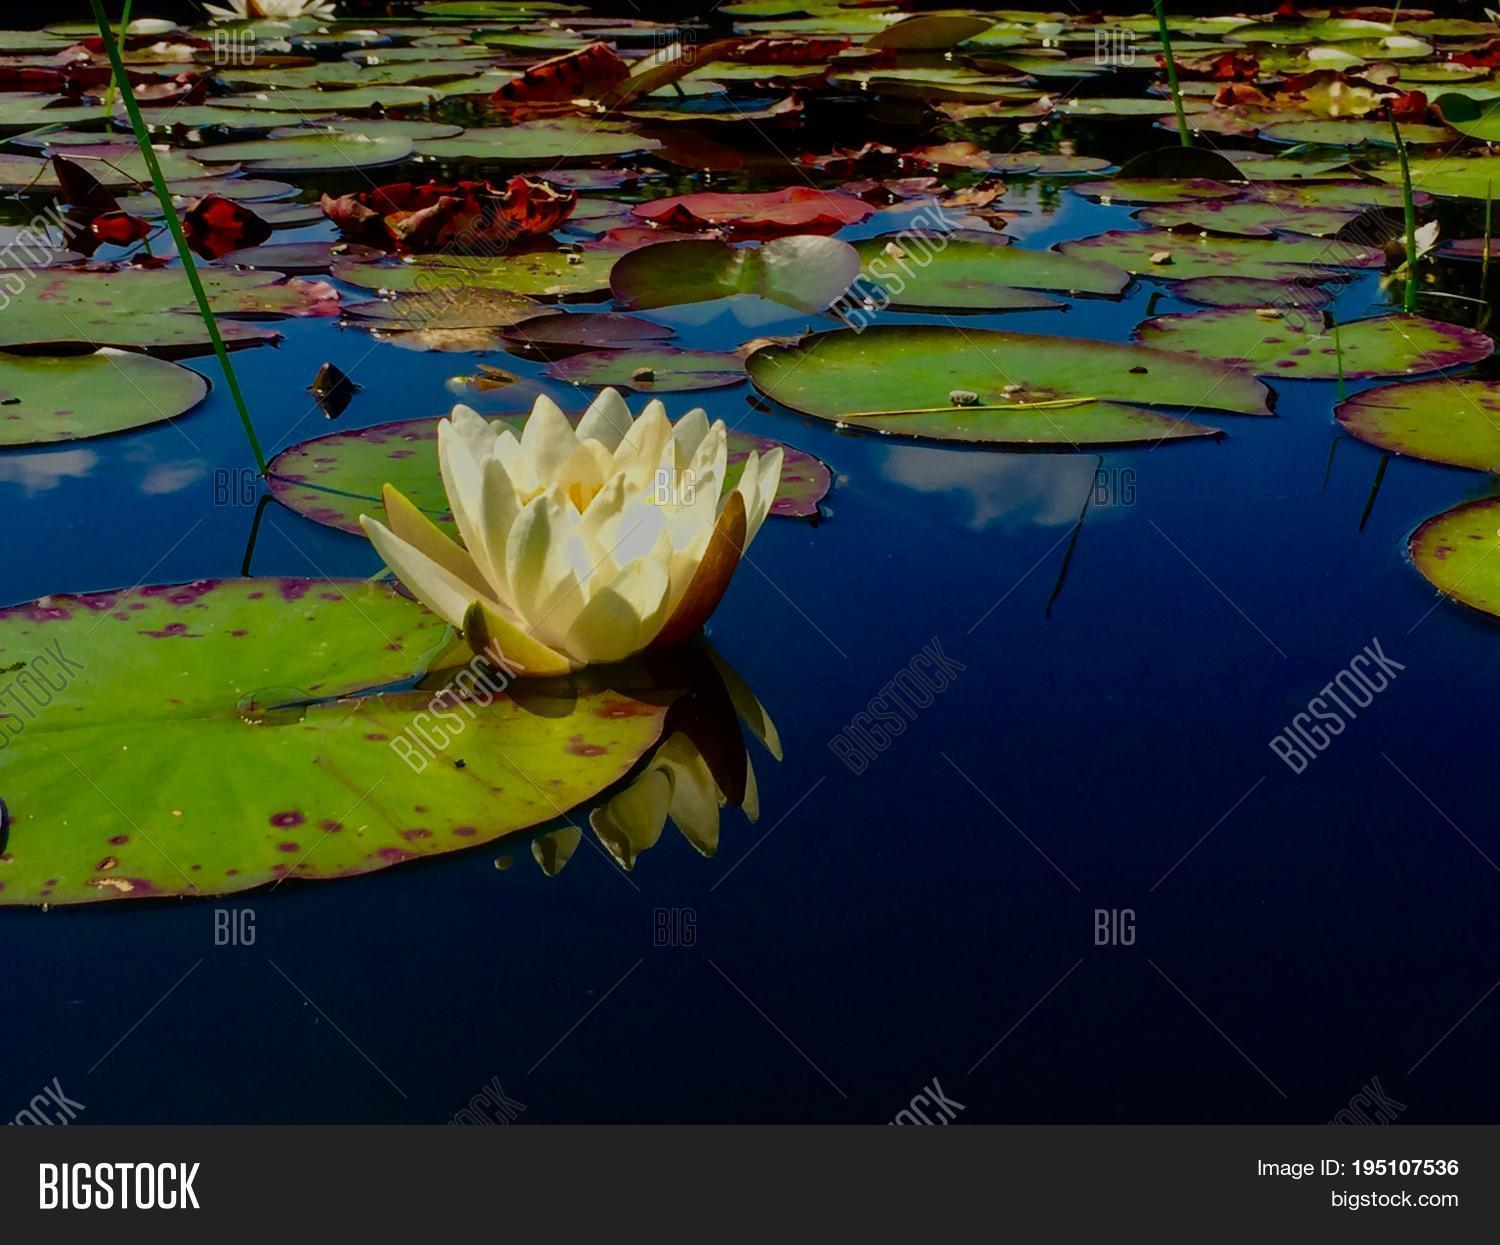 Lotus flower meaning image photo free trial bigstock the lotus flower is the meaning of peace izmirmasajfo